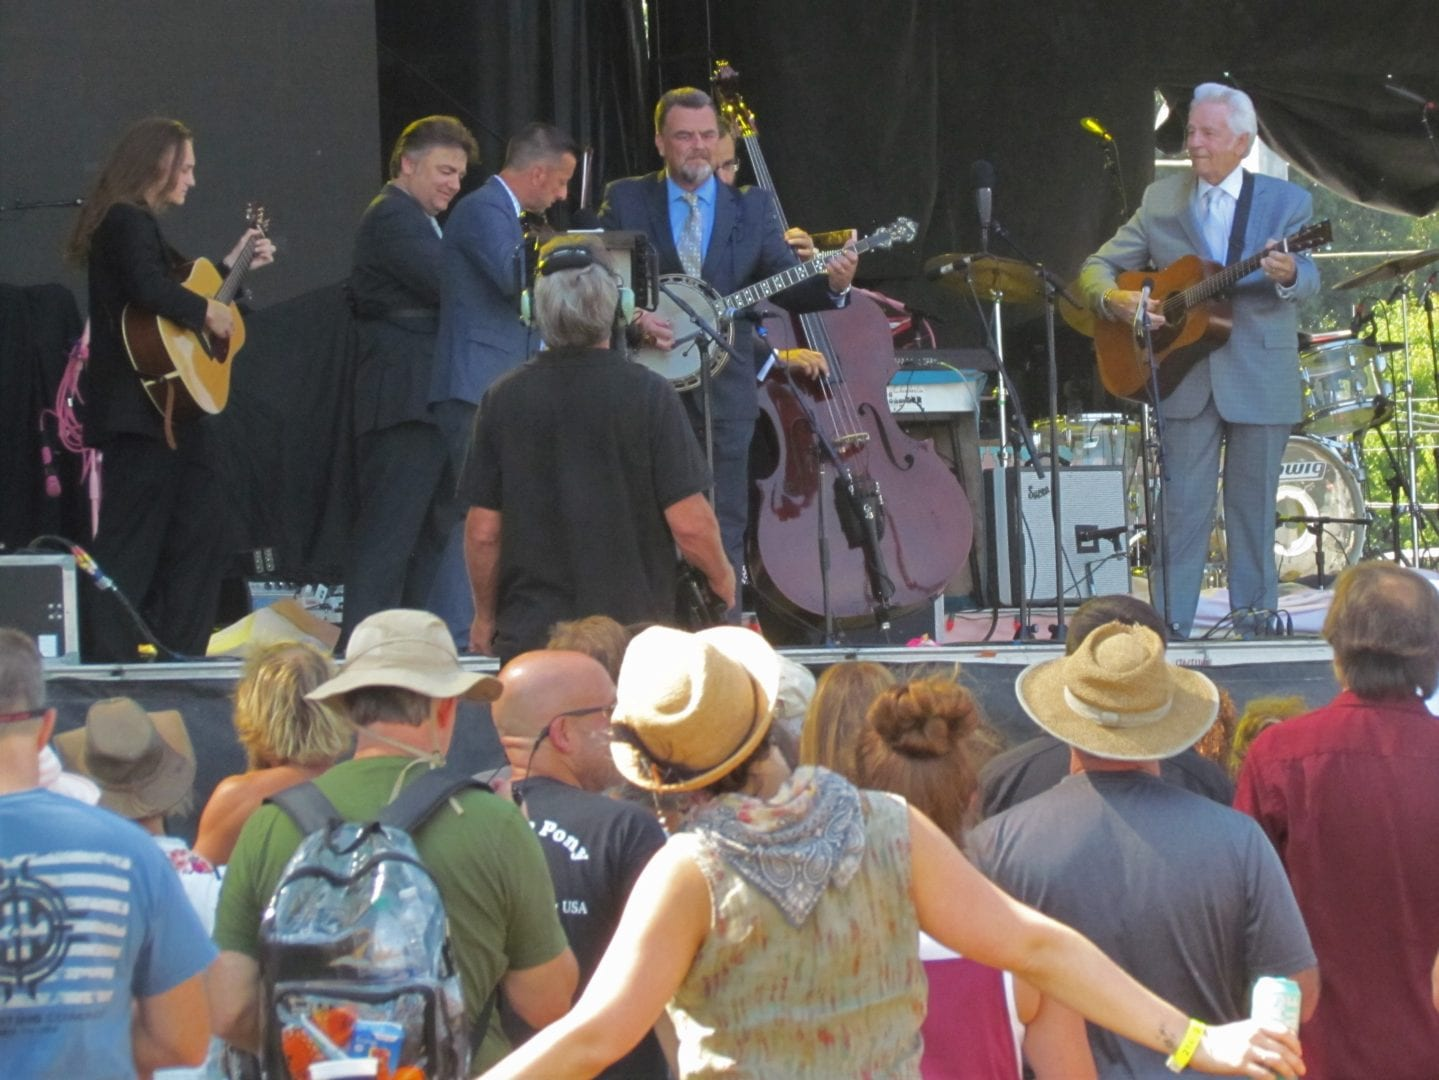 The McCoury band playing up on the stage